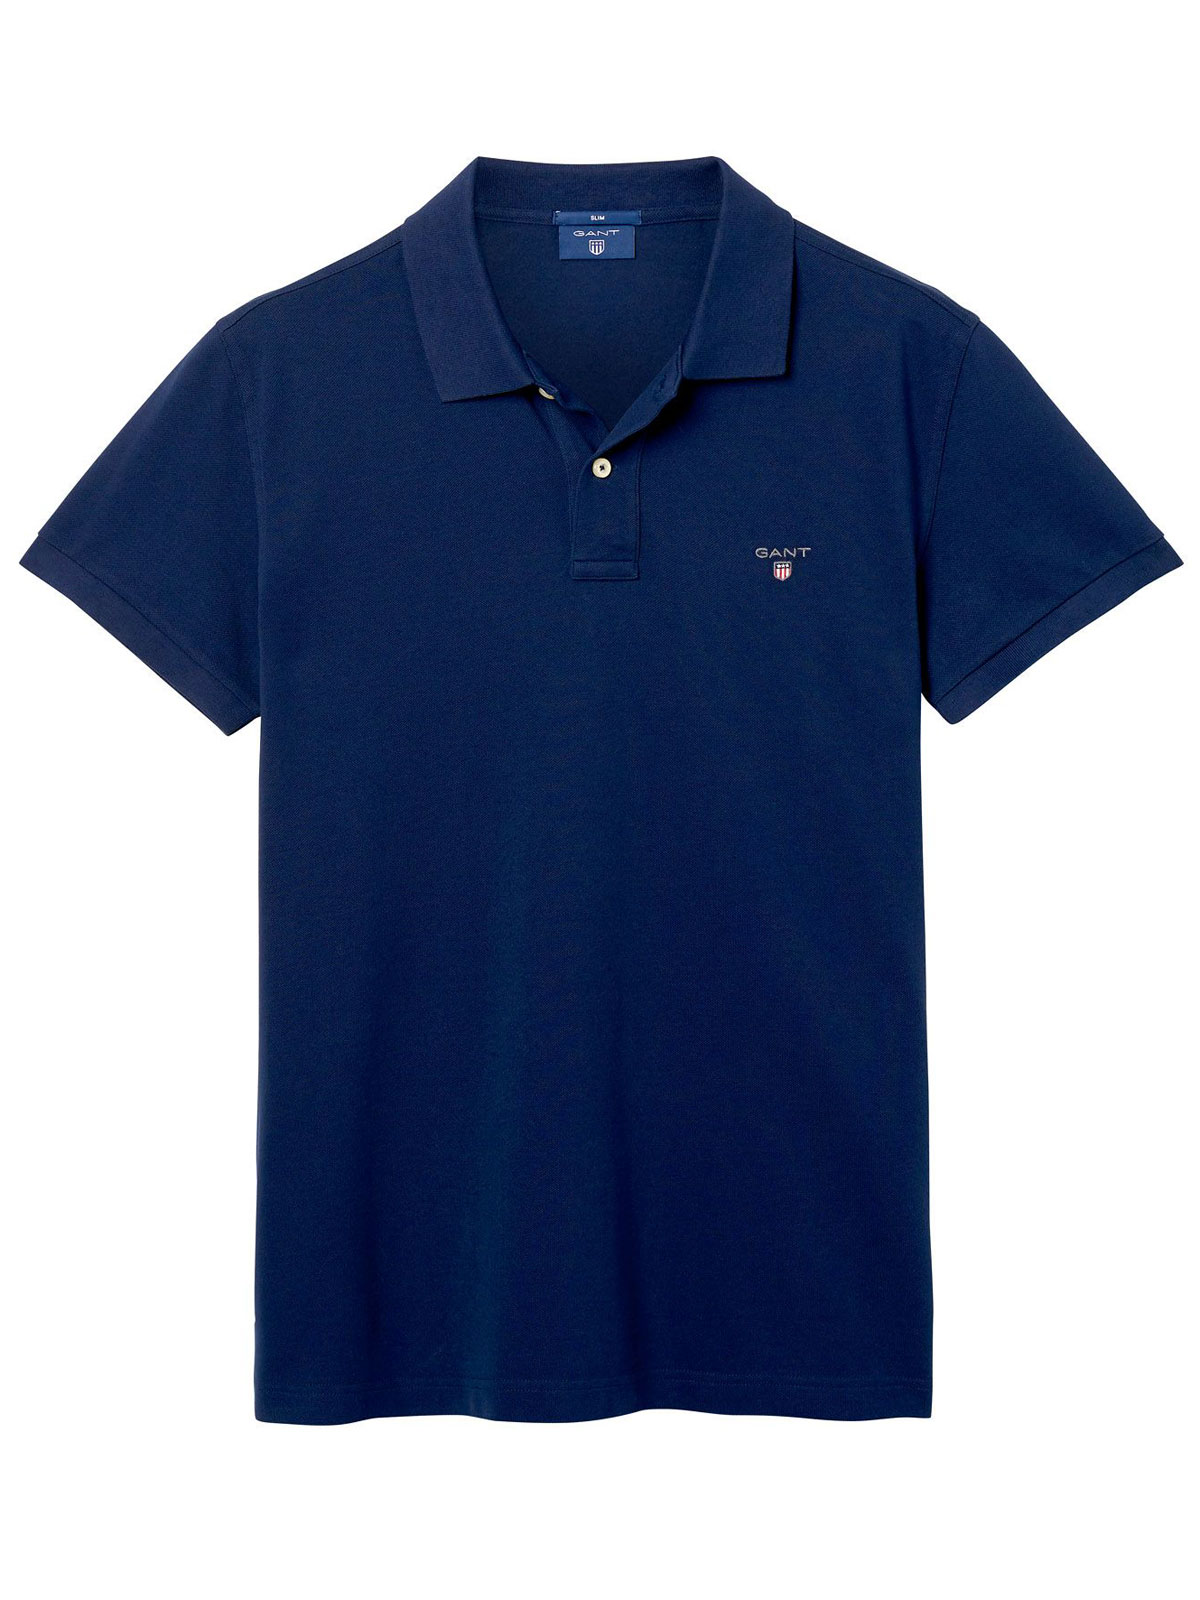 Gant men 39 s slim polo shirt 433 botta b for Mens slim polo shirts